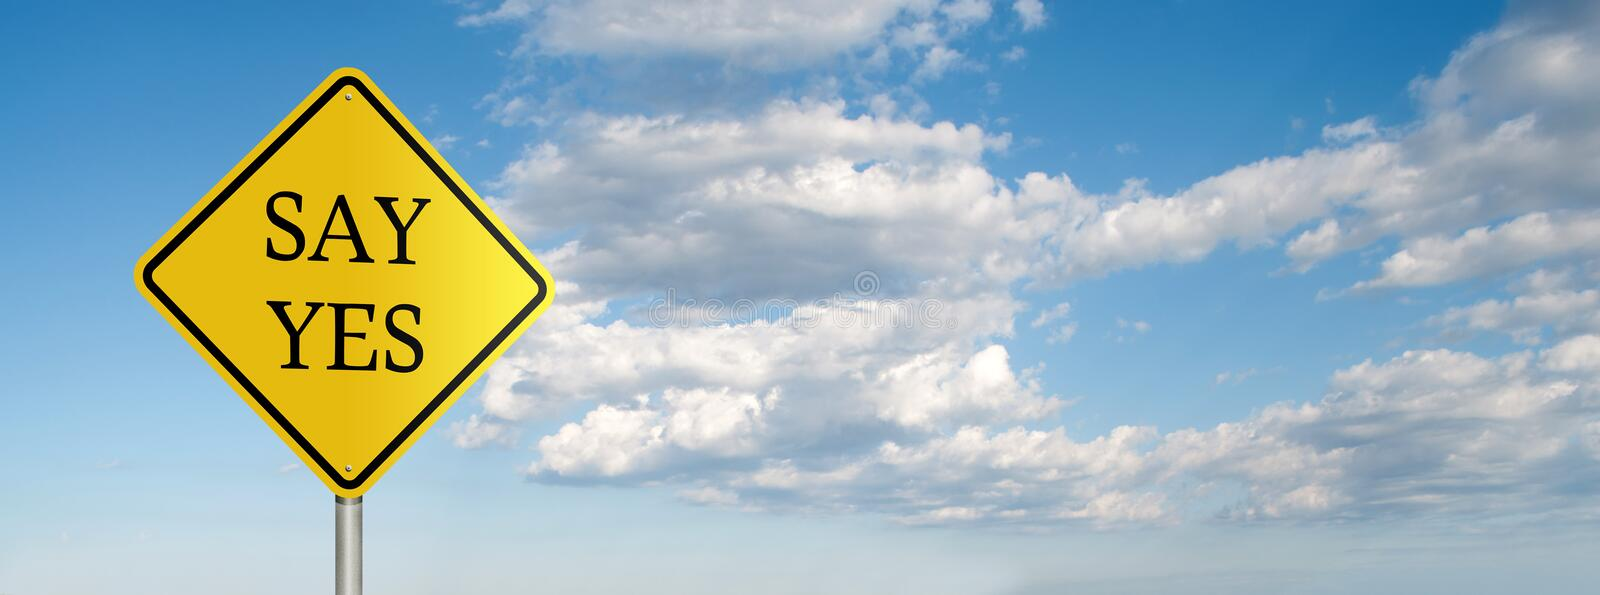 Download Say yes stock image. Image of caution, horizontal, warning - 27464469